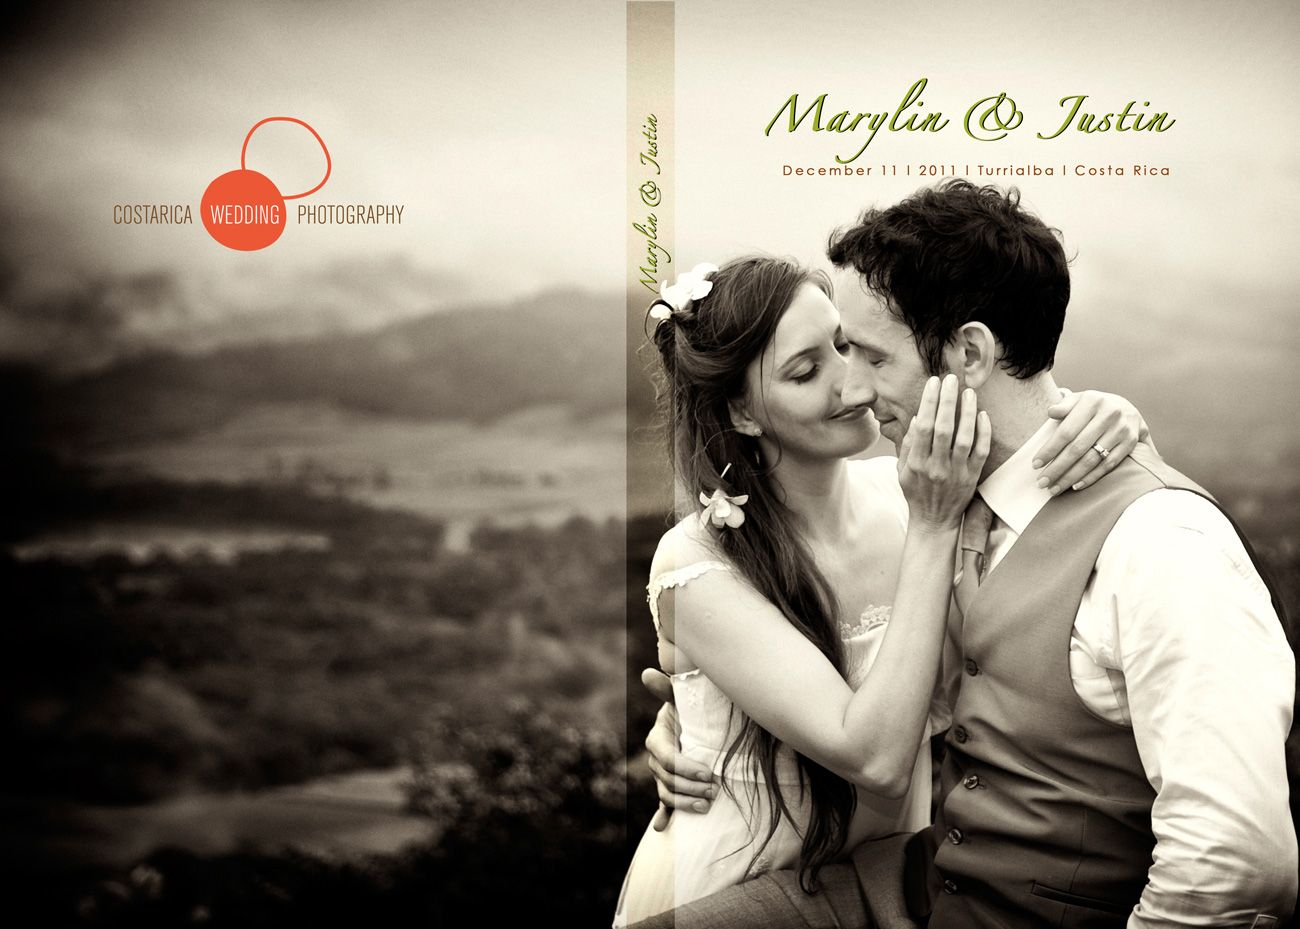 Wedding photo book | Wedding dress | photobook design | Pinterest ...